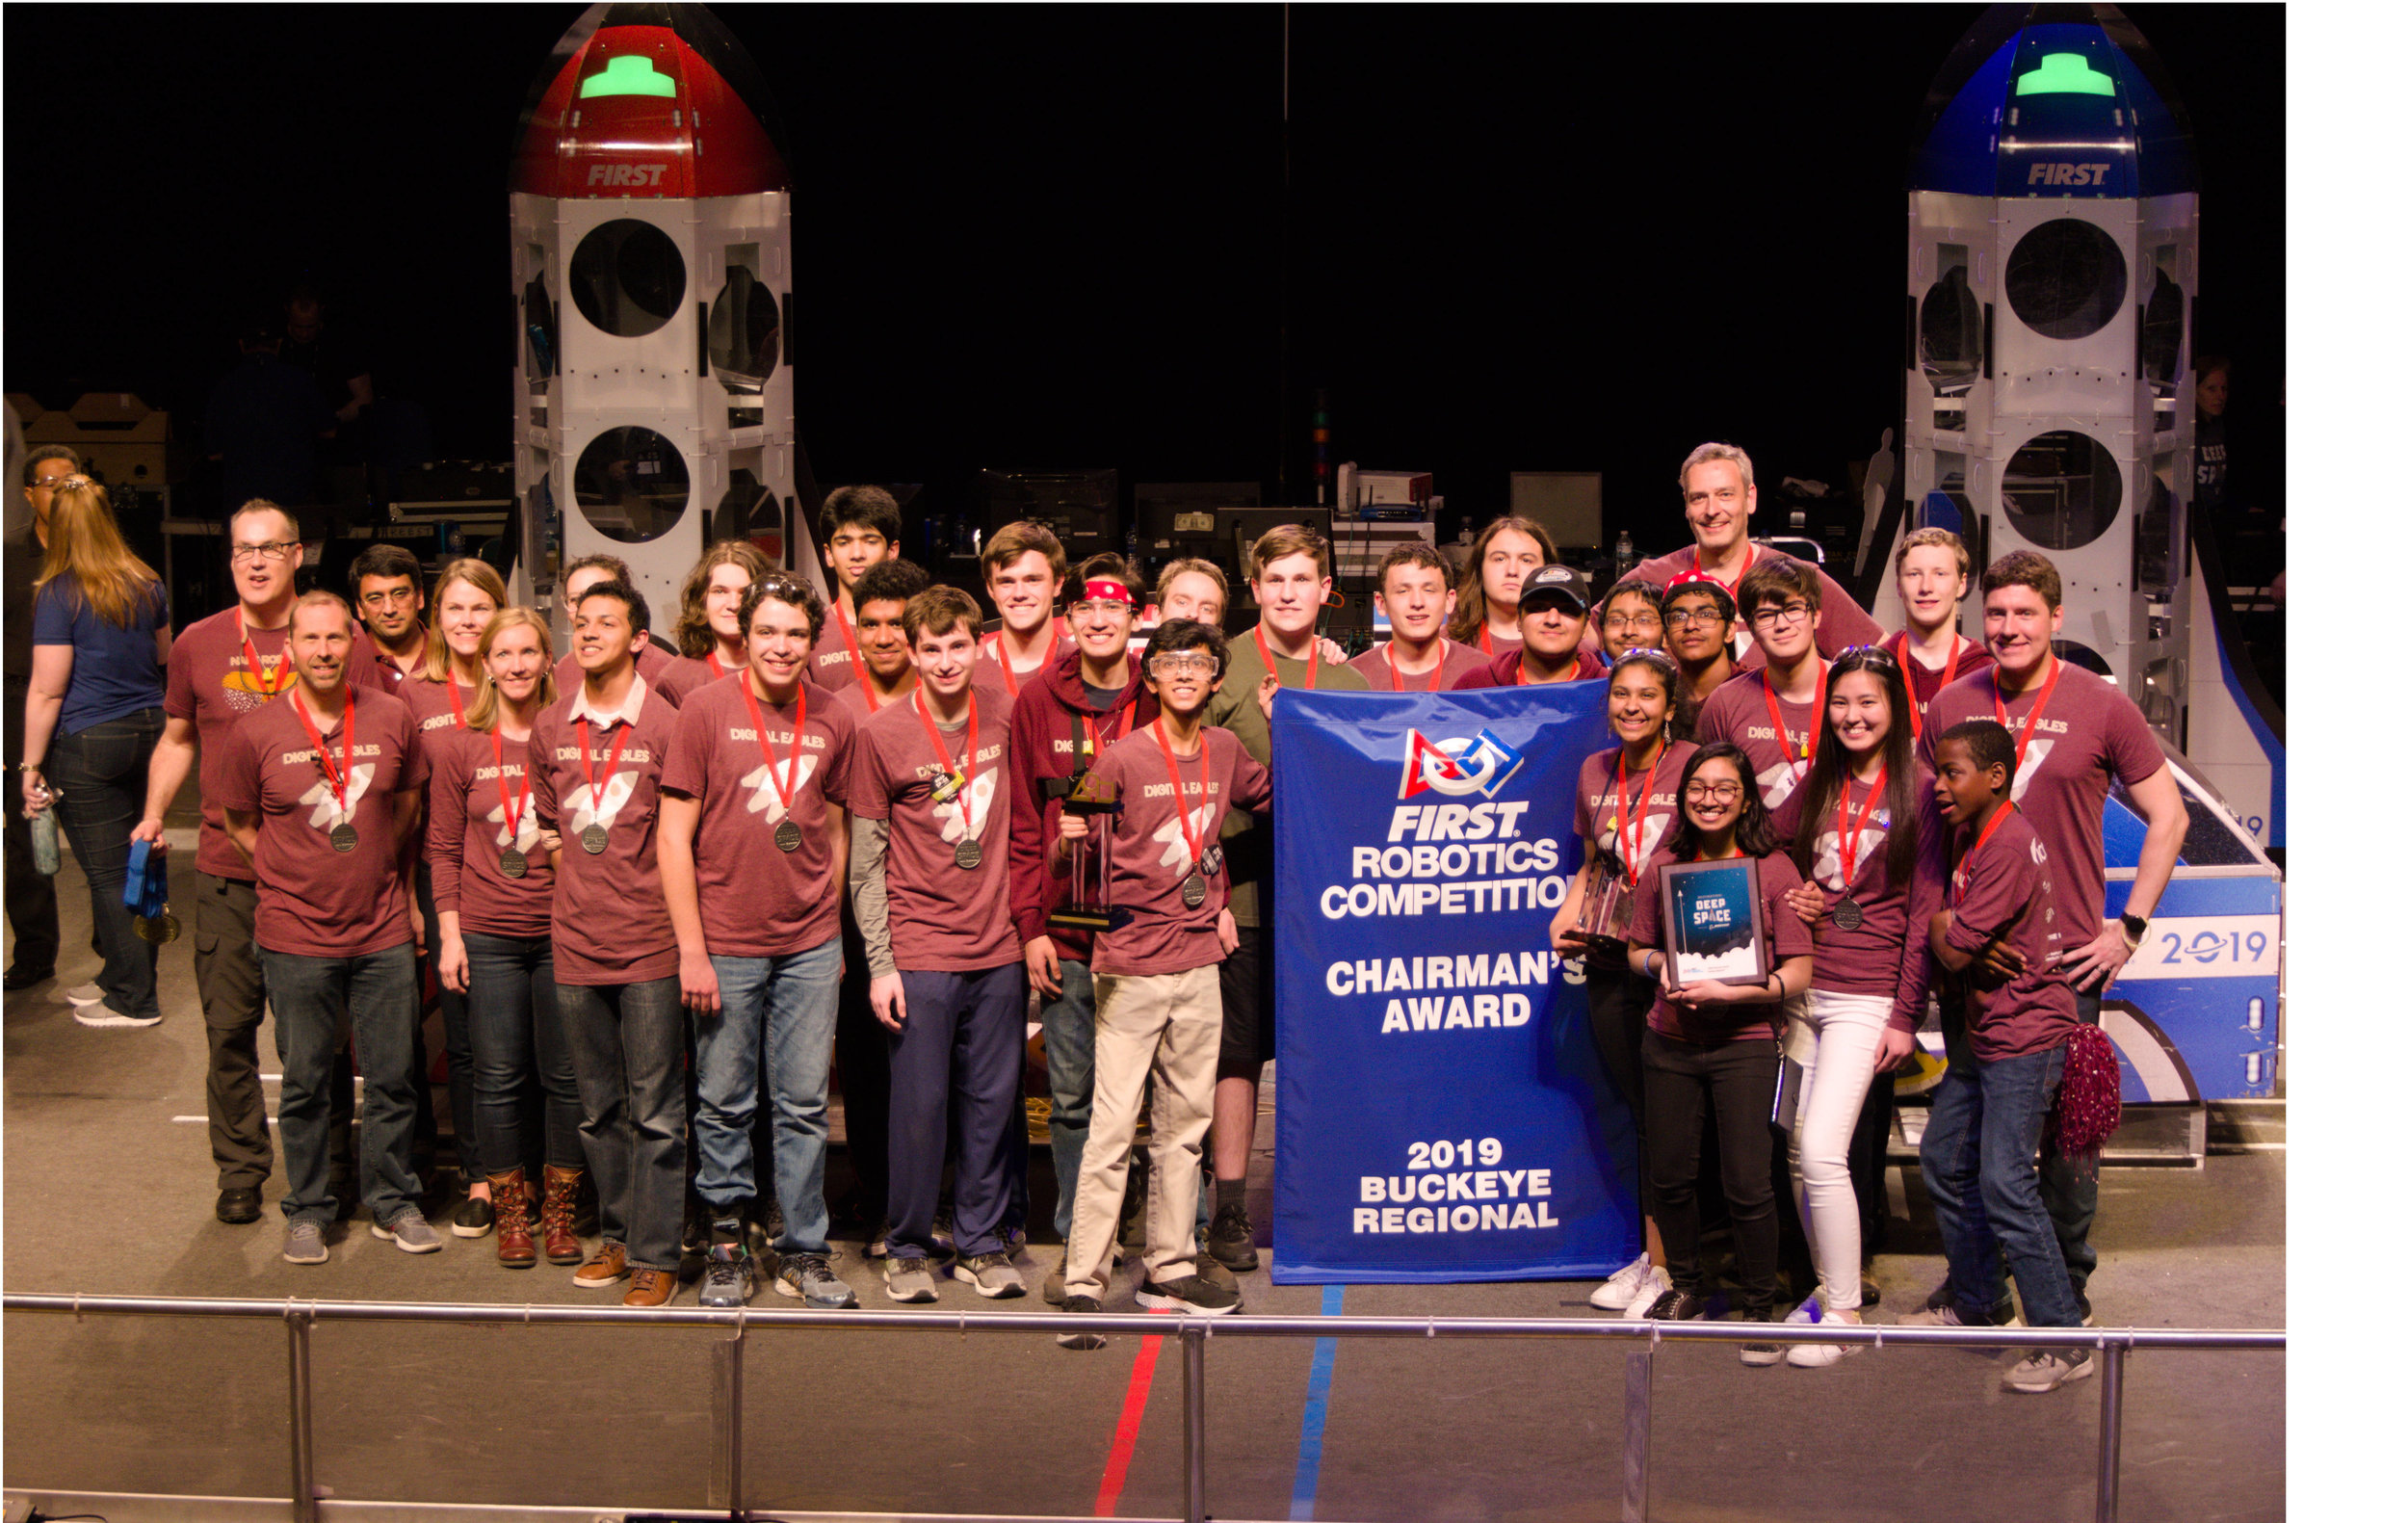 - On March 30, 2019, after 90 qualifying rounds of competition at the Buckeye Regional competition, our team was selected for an alliance with robotics teams from New York and Cleveland. In the play-off rounds, our alliance won its quarterfinal round after a sudden death match, won both of its semi-final matches, and lost in the Championship match.In addition to our team being a Regional Finalist, we qualified for the World Championship by winning the Chairman's Award. This Award is the most prestigious award at FIRST and it honors the team that best represents a model for other teams to emulate and best embodies the mission of FIRST.